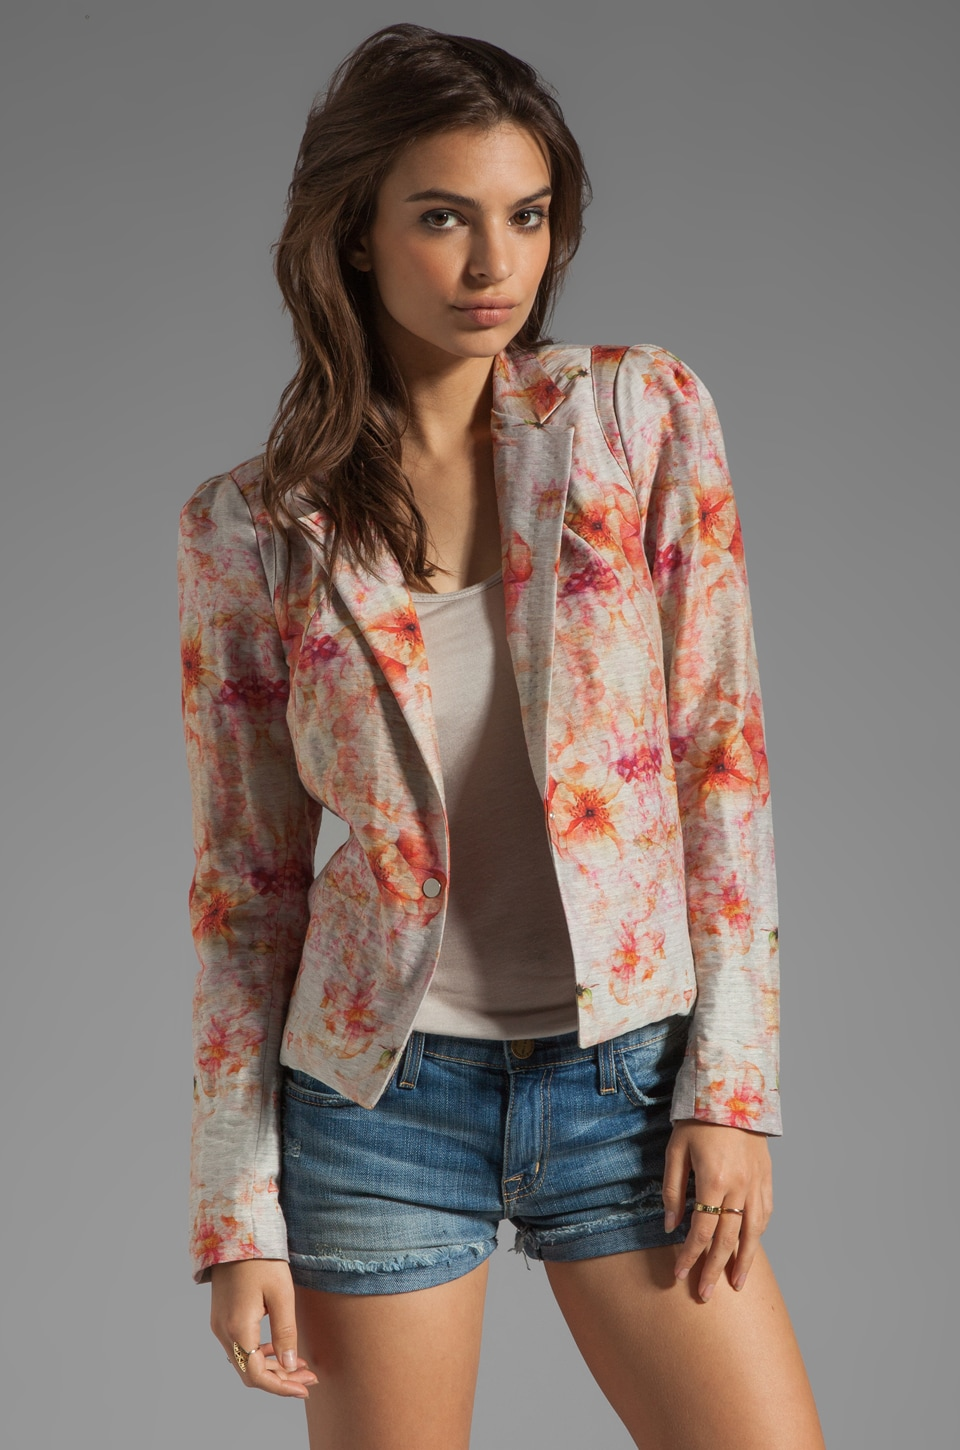 Graham & Spencer Flora Jacquard Blazer in Multi